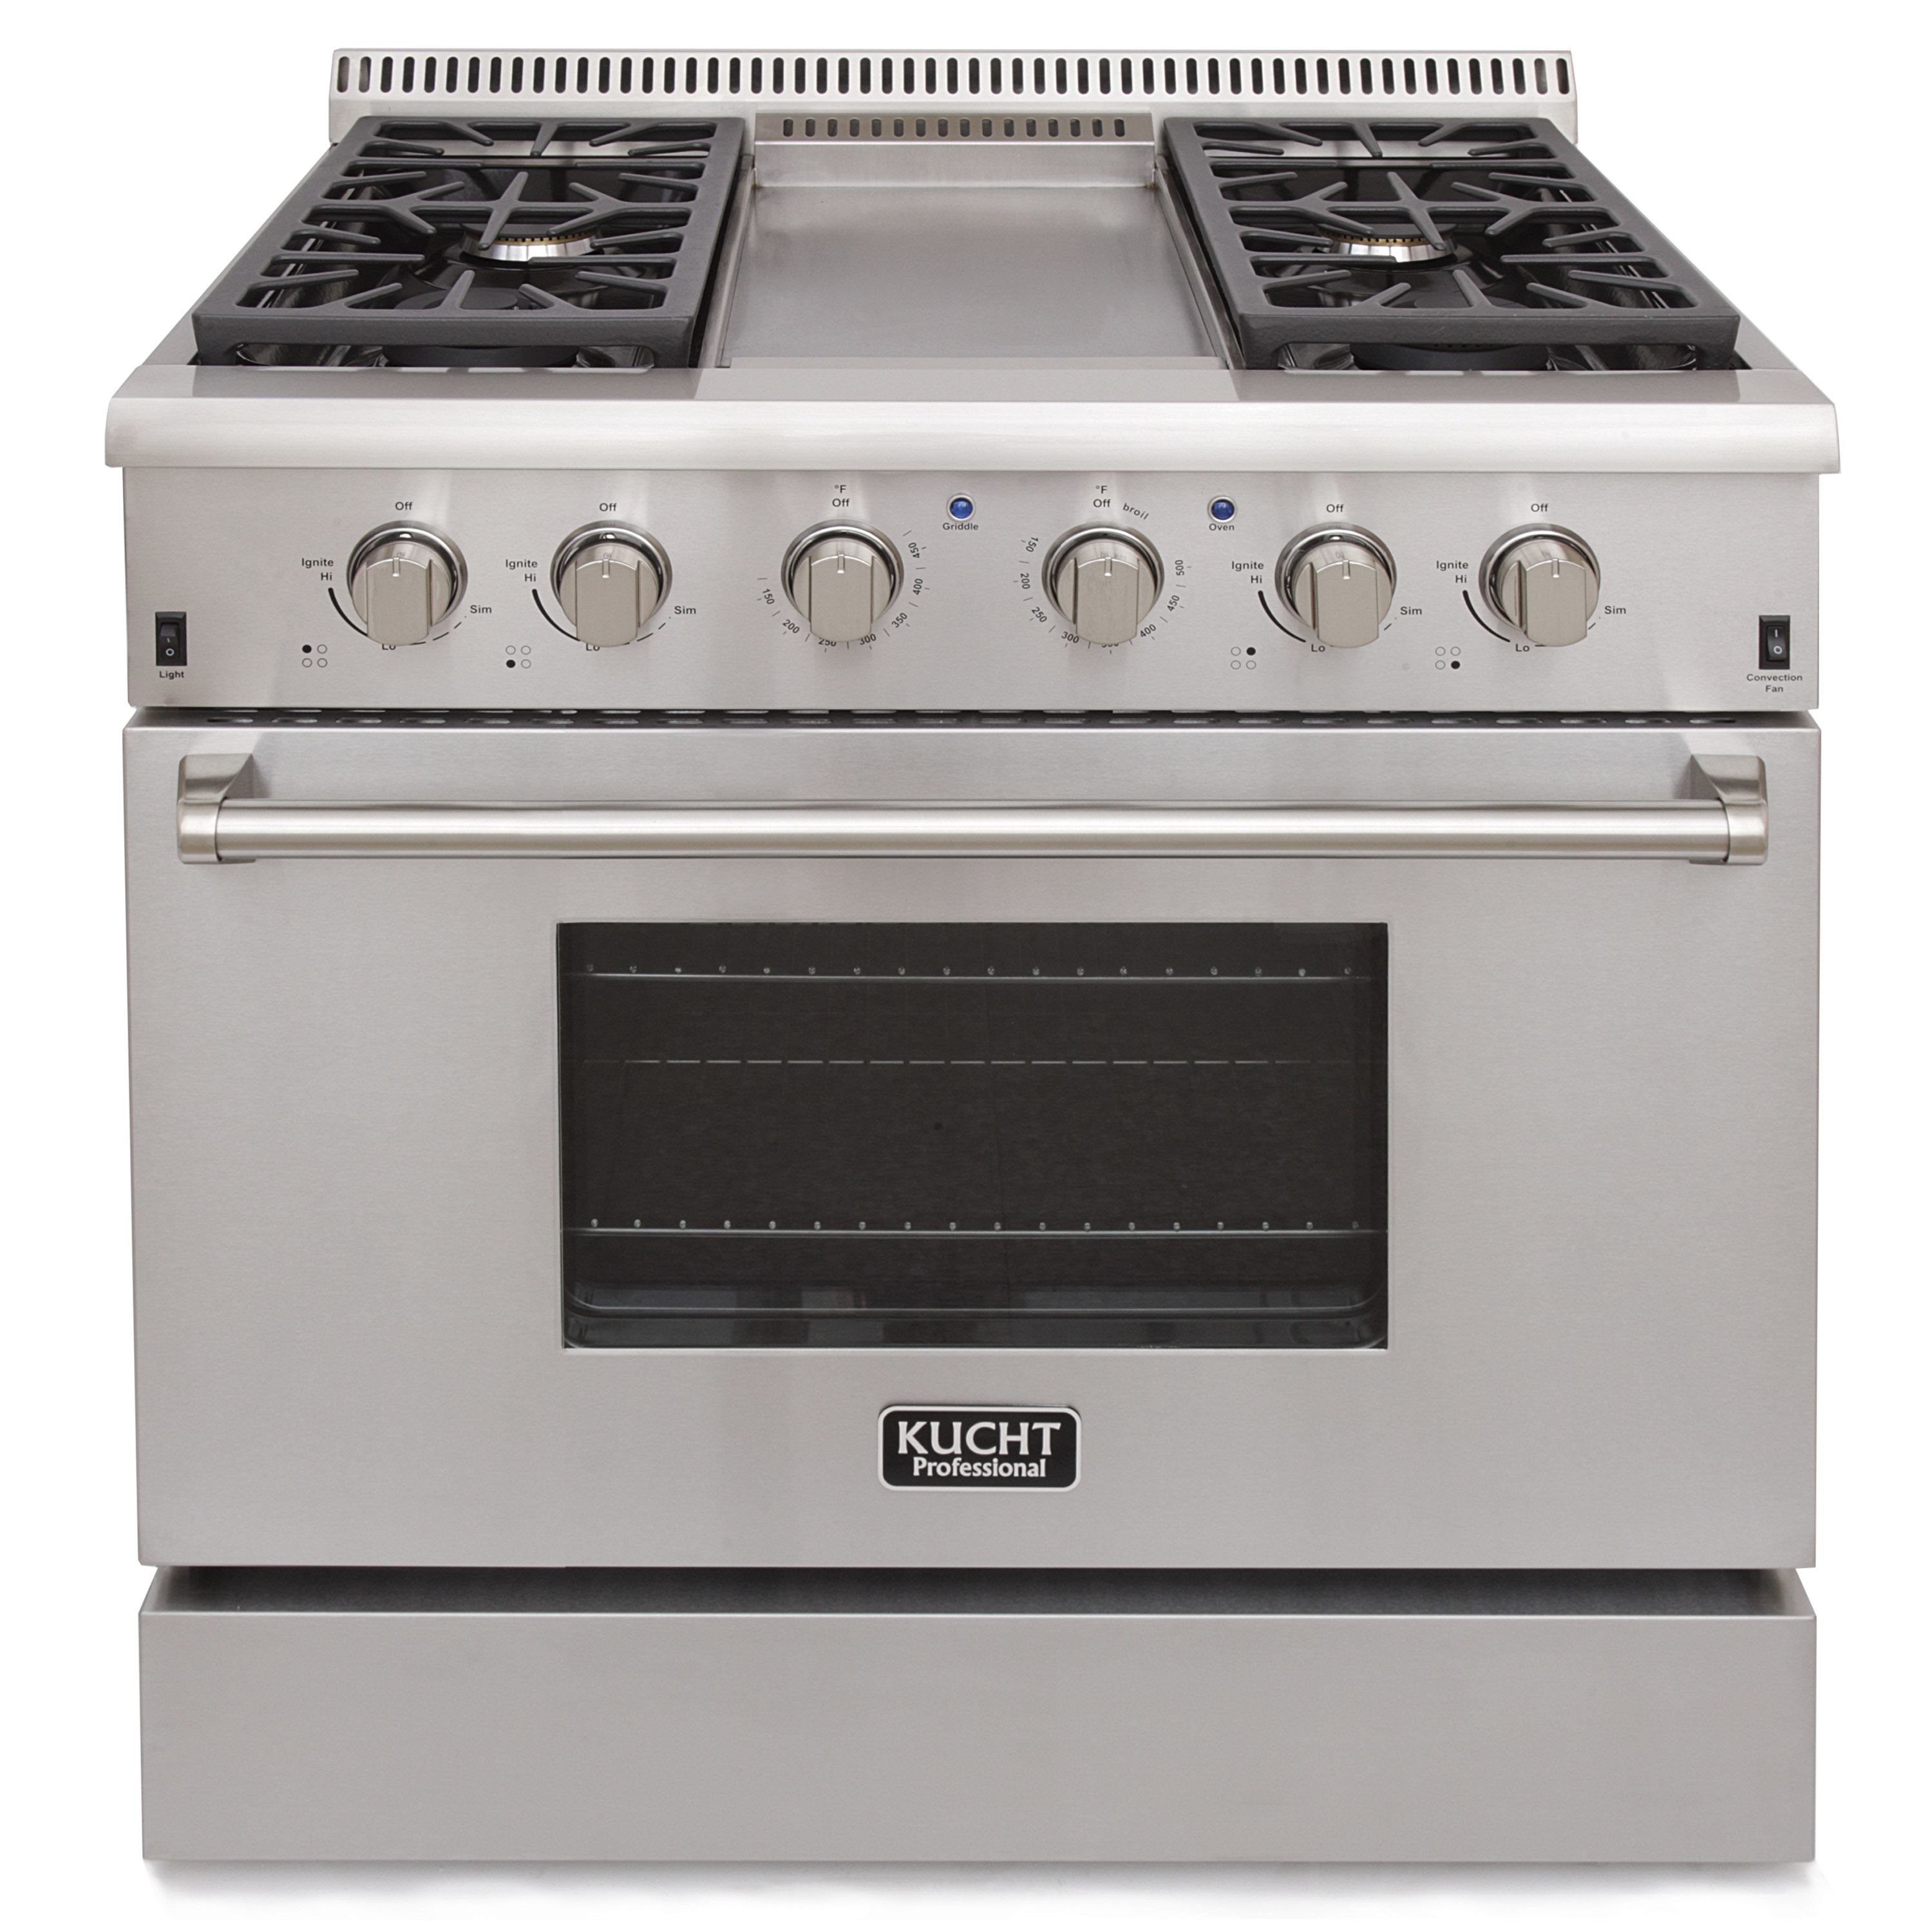 KUCHT Professional 36 in. 5.2 cu. ft. Natural Gas Range with Sealed Burners, Griddle